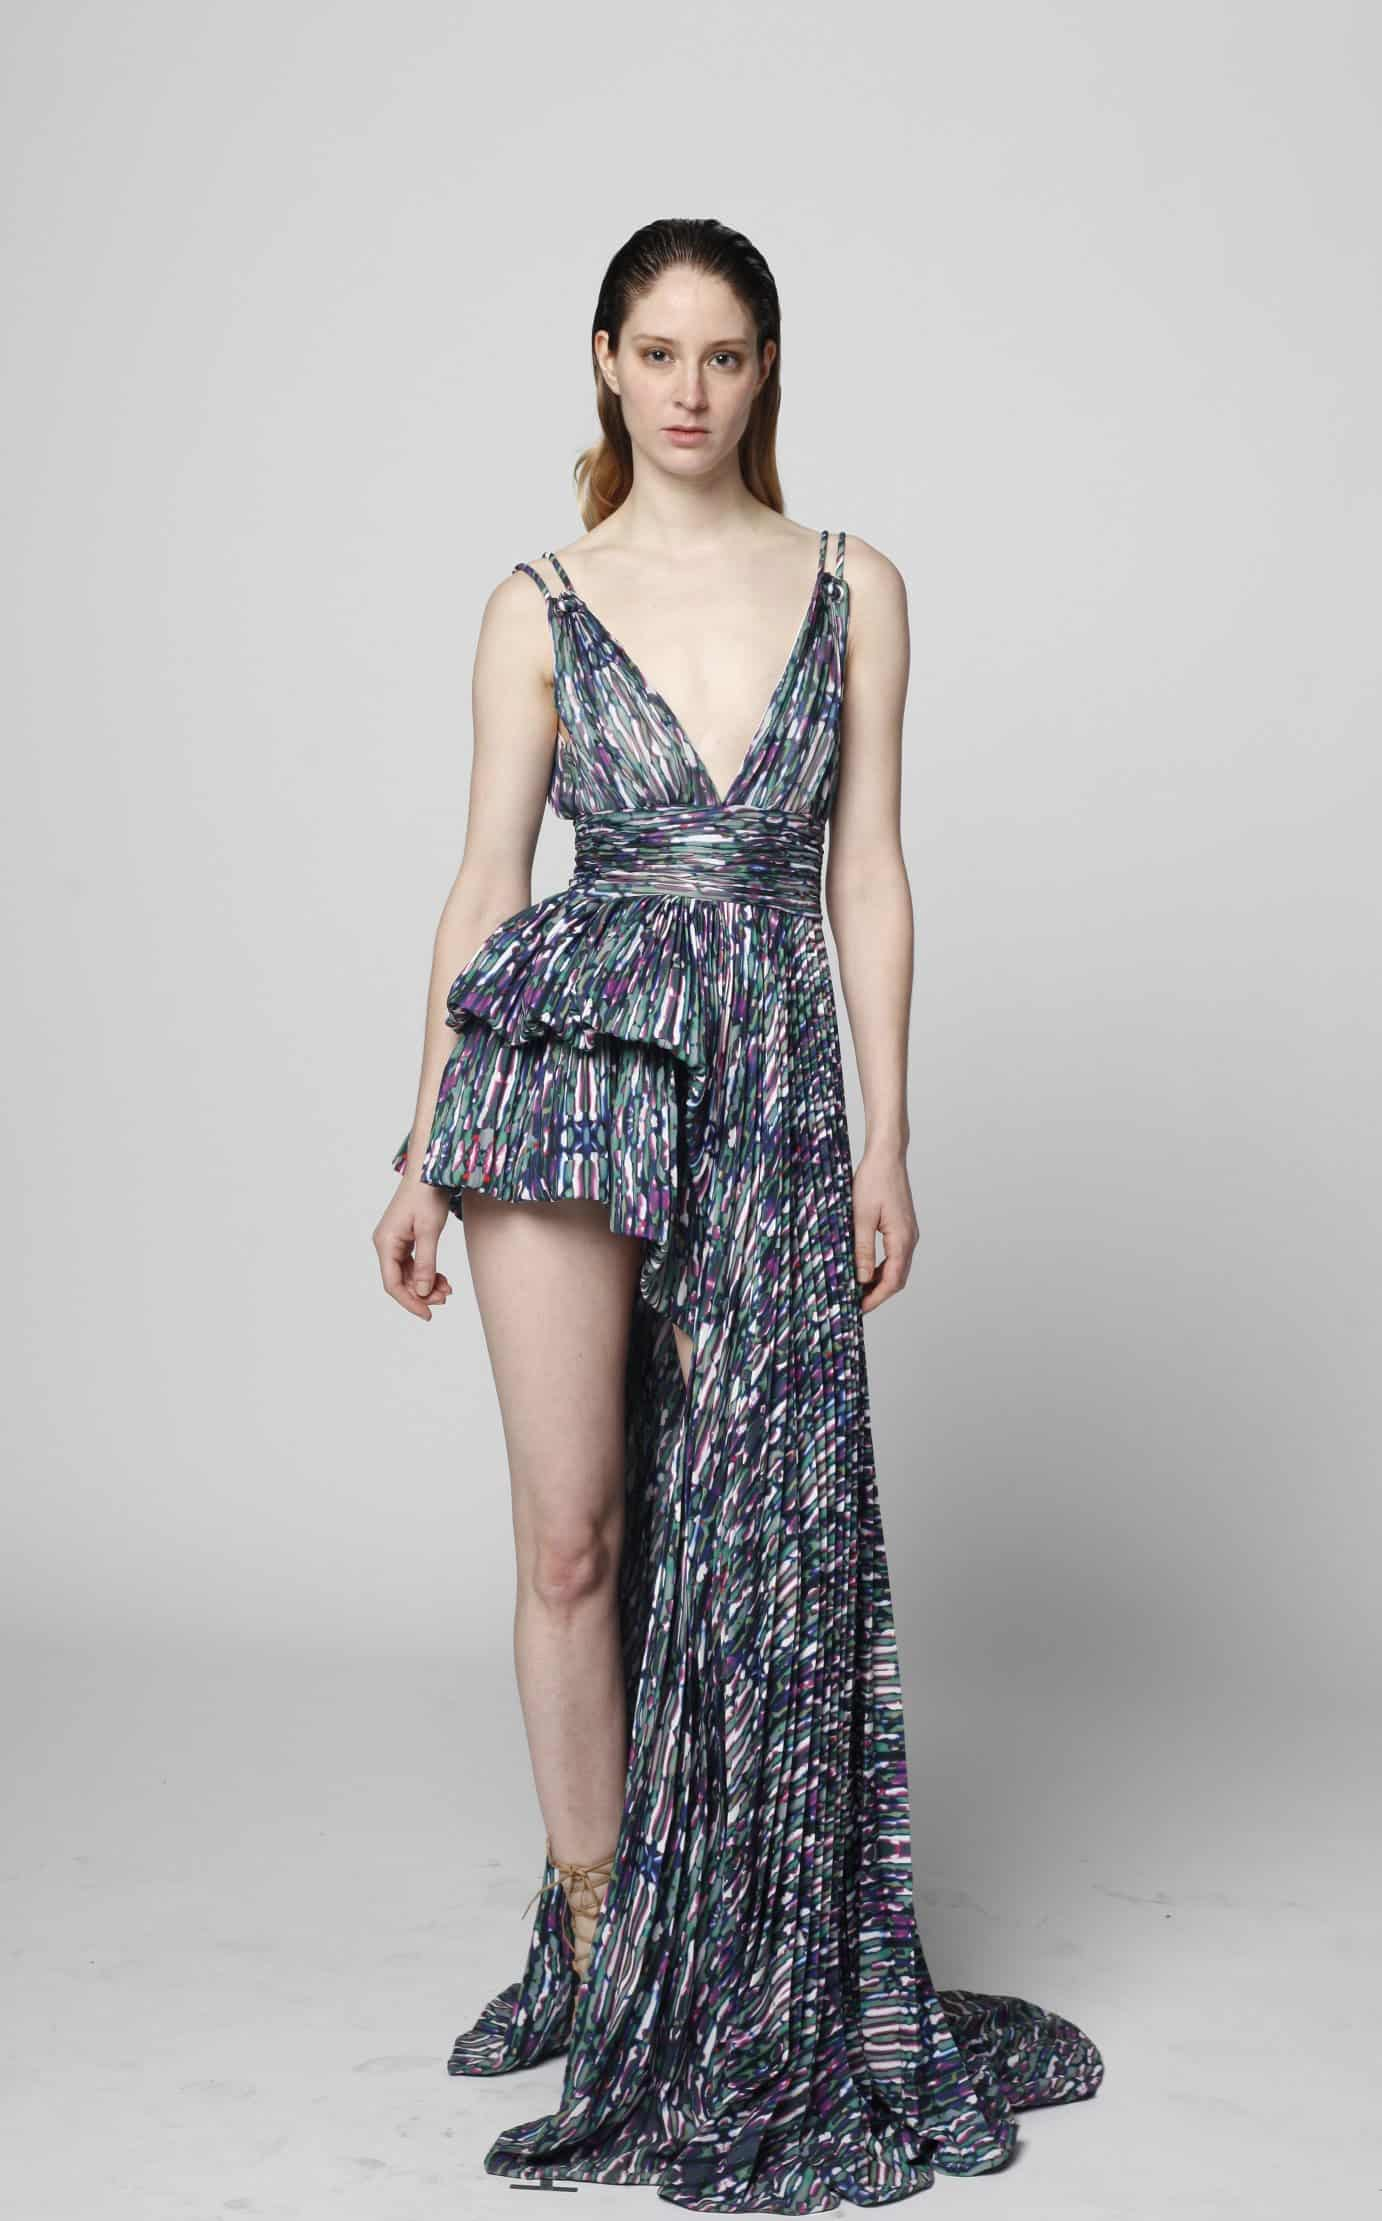 This dress was created with an Epson printer.